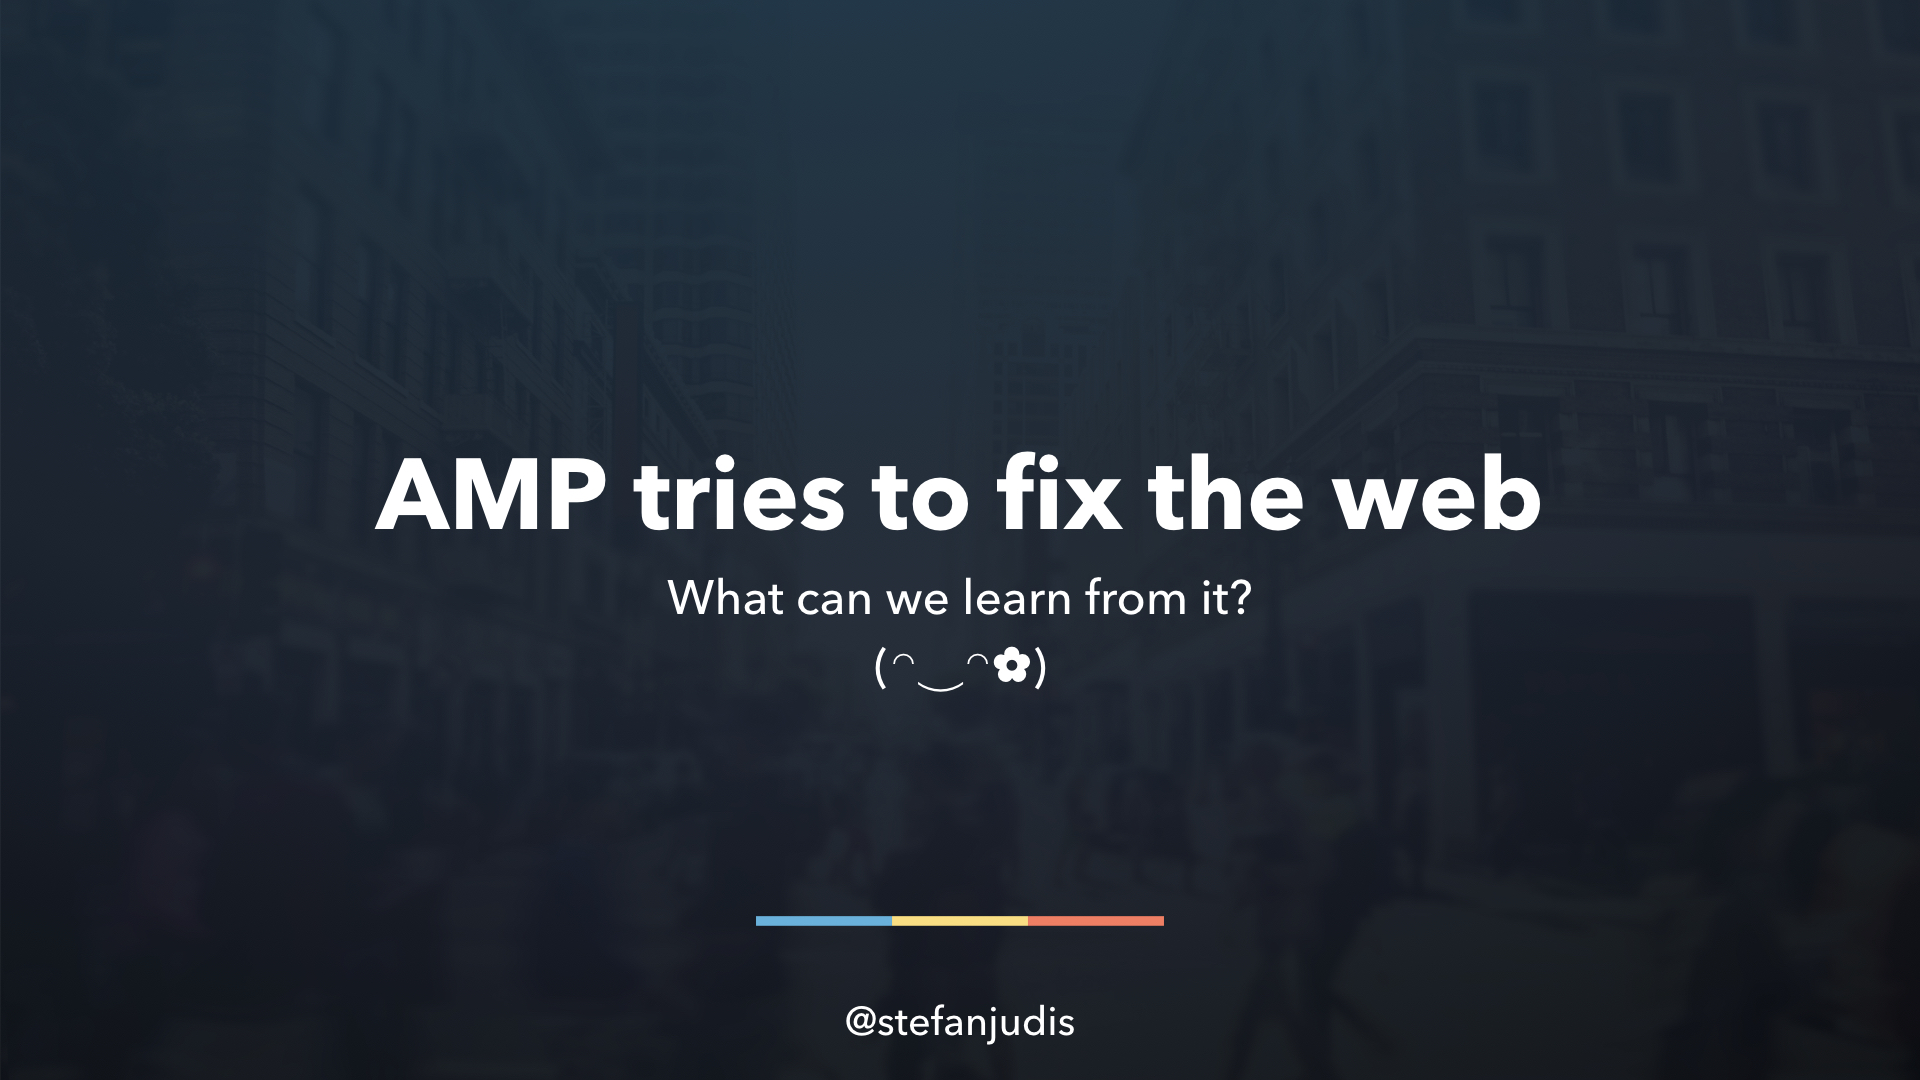 AMP tries to fix the web - what can we learn from it